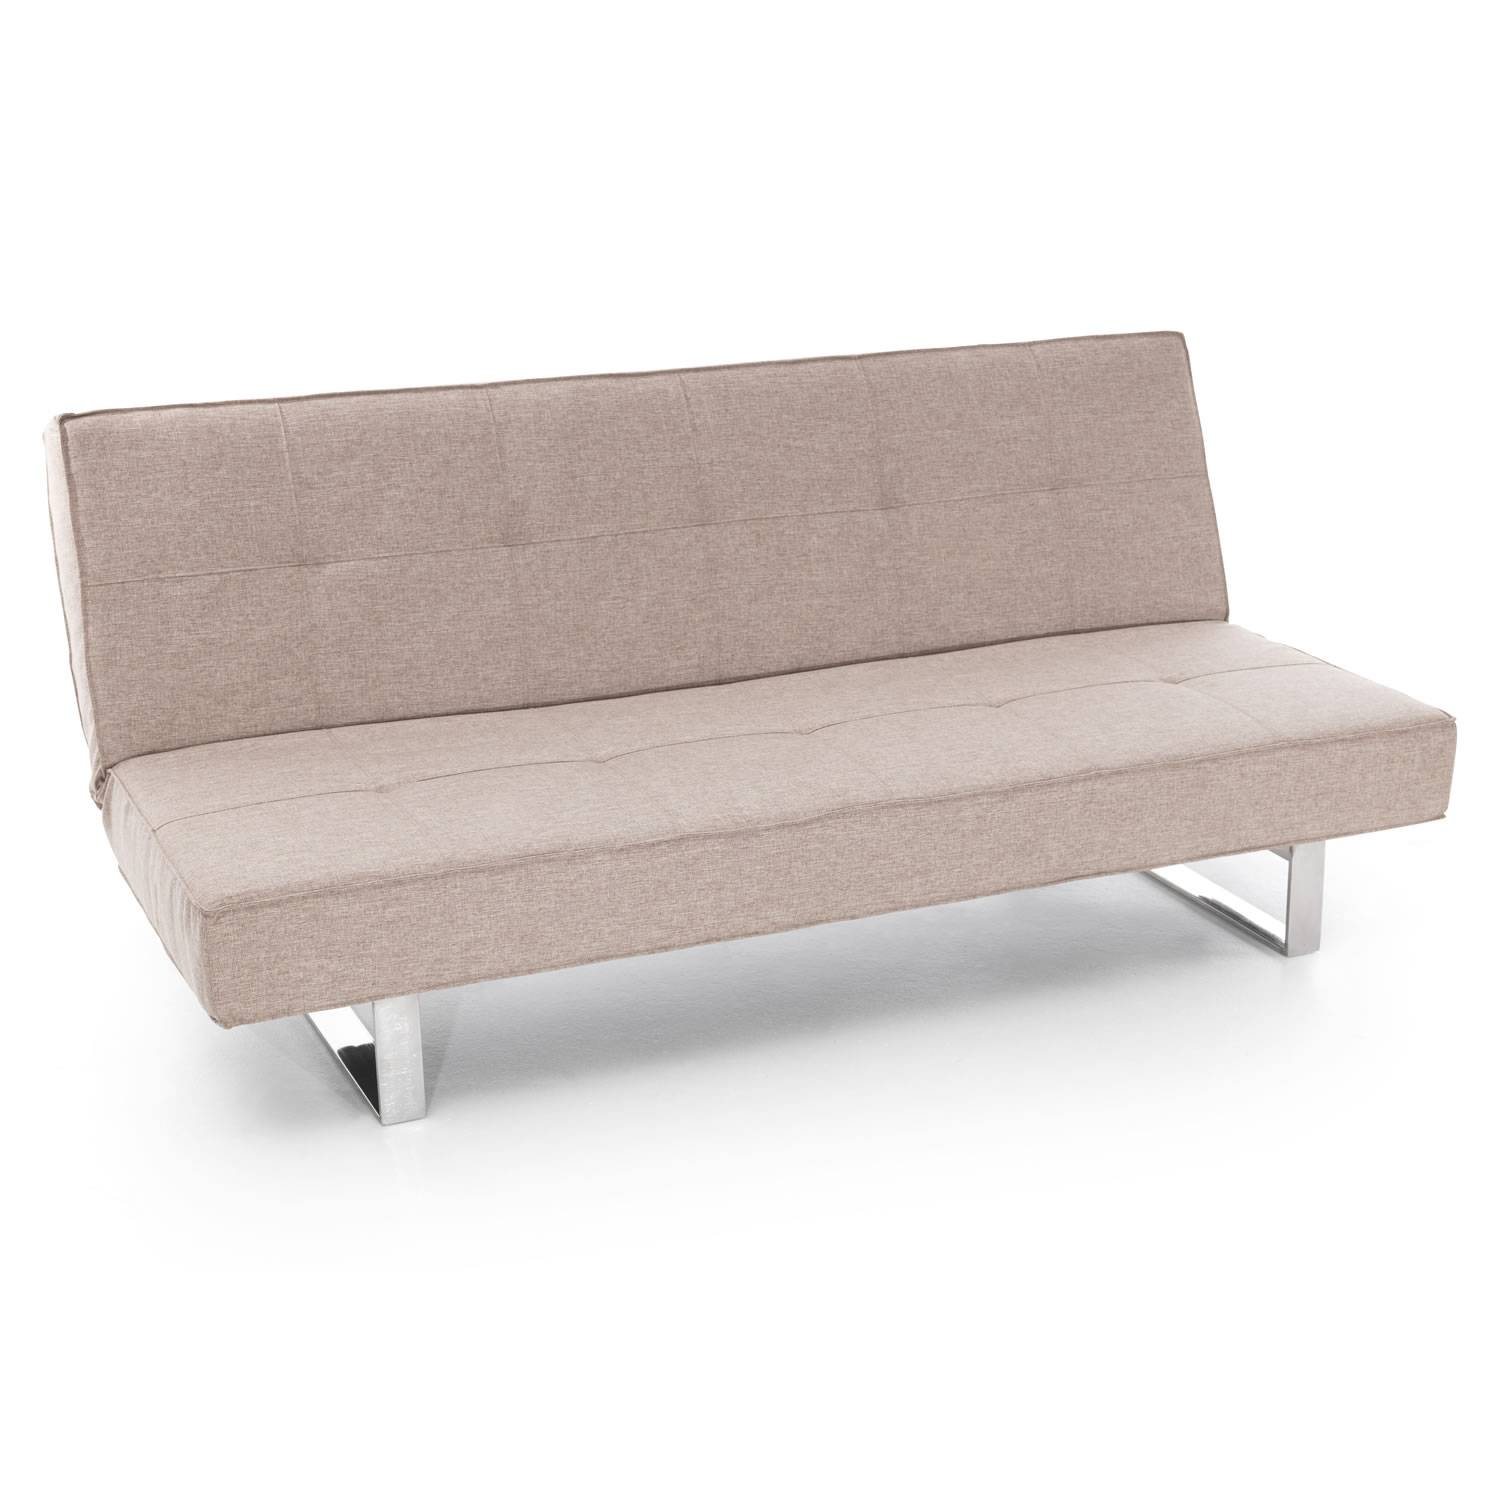 Small Scale Sofa Bed | Tehranmix Decoration intended for Small Scale Sofa Bed (Image 10 of 25)